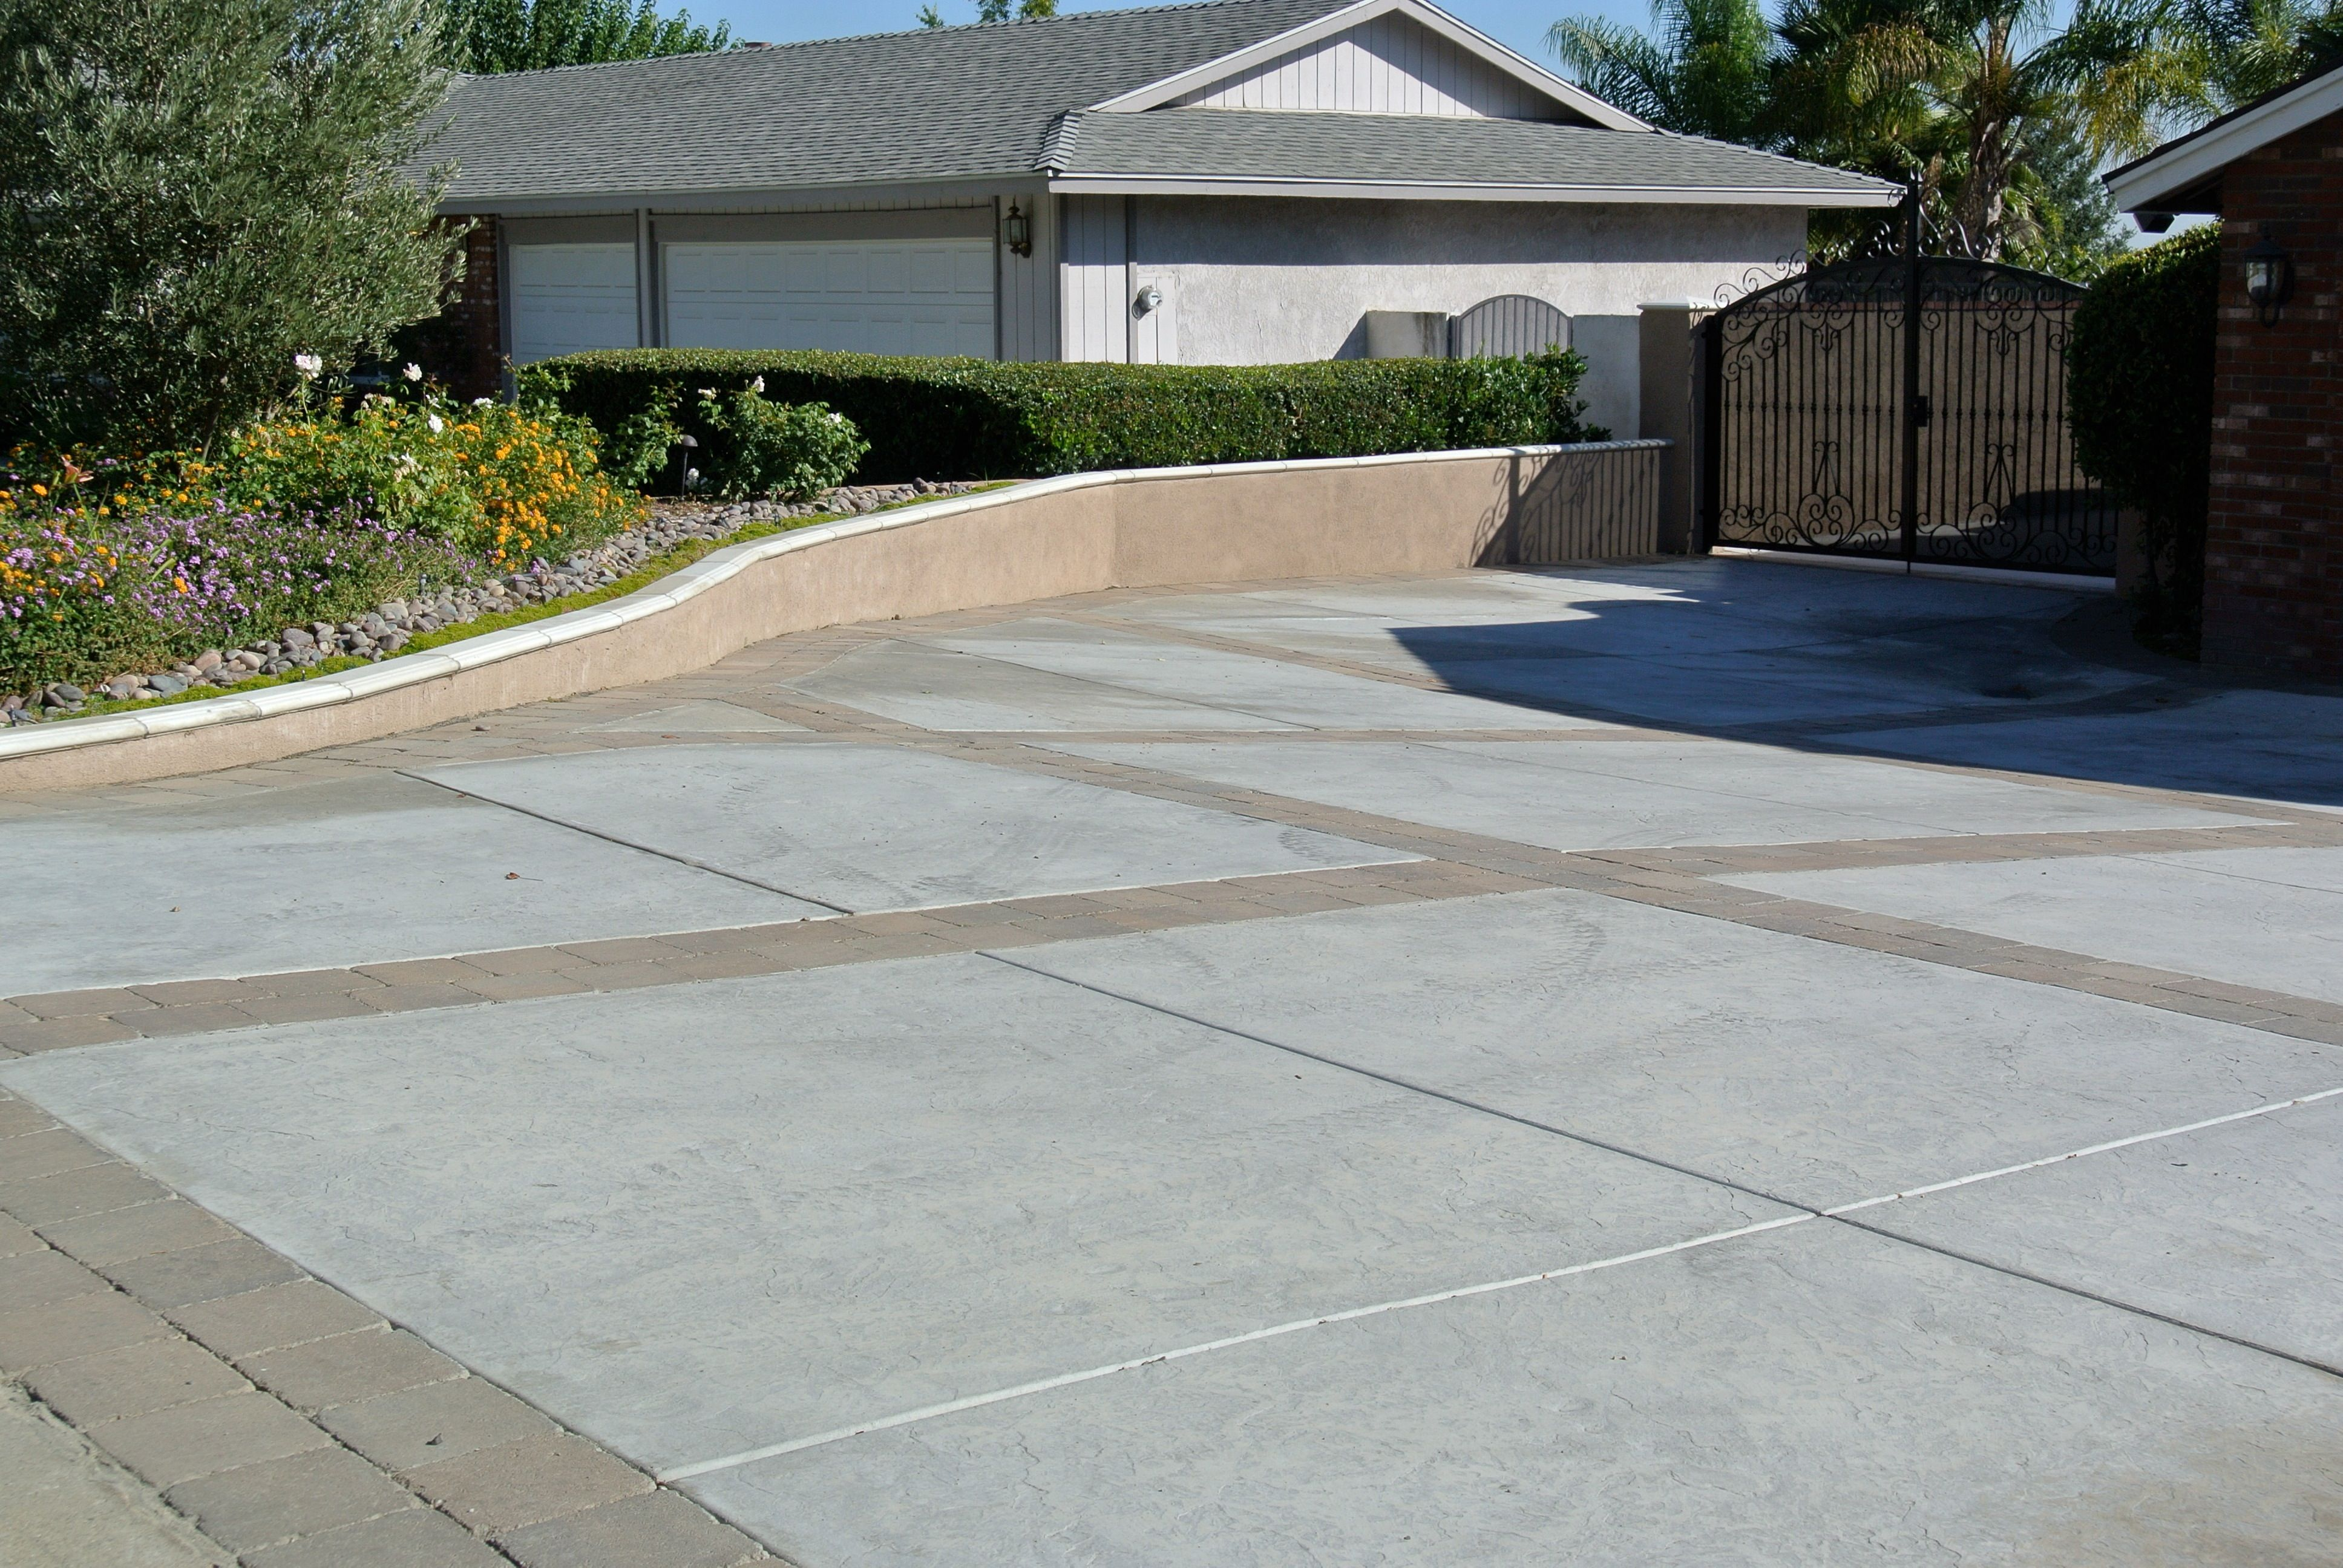 stone driveway yahoo image search results - Concrete Driveway Design Ideas